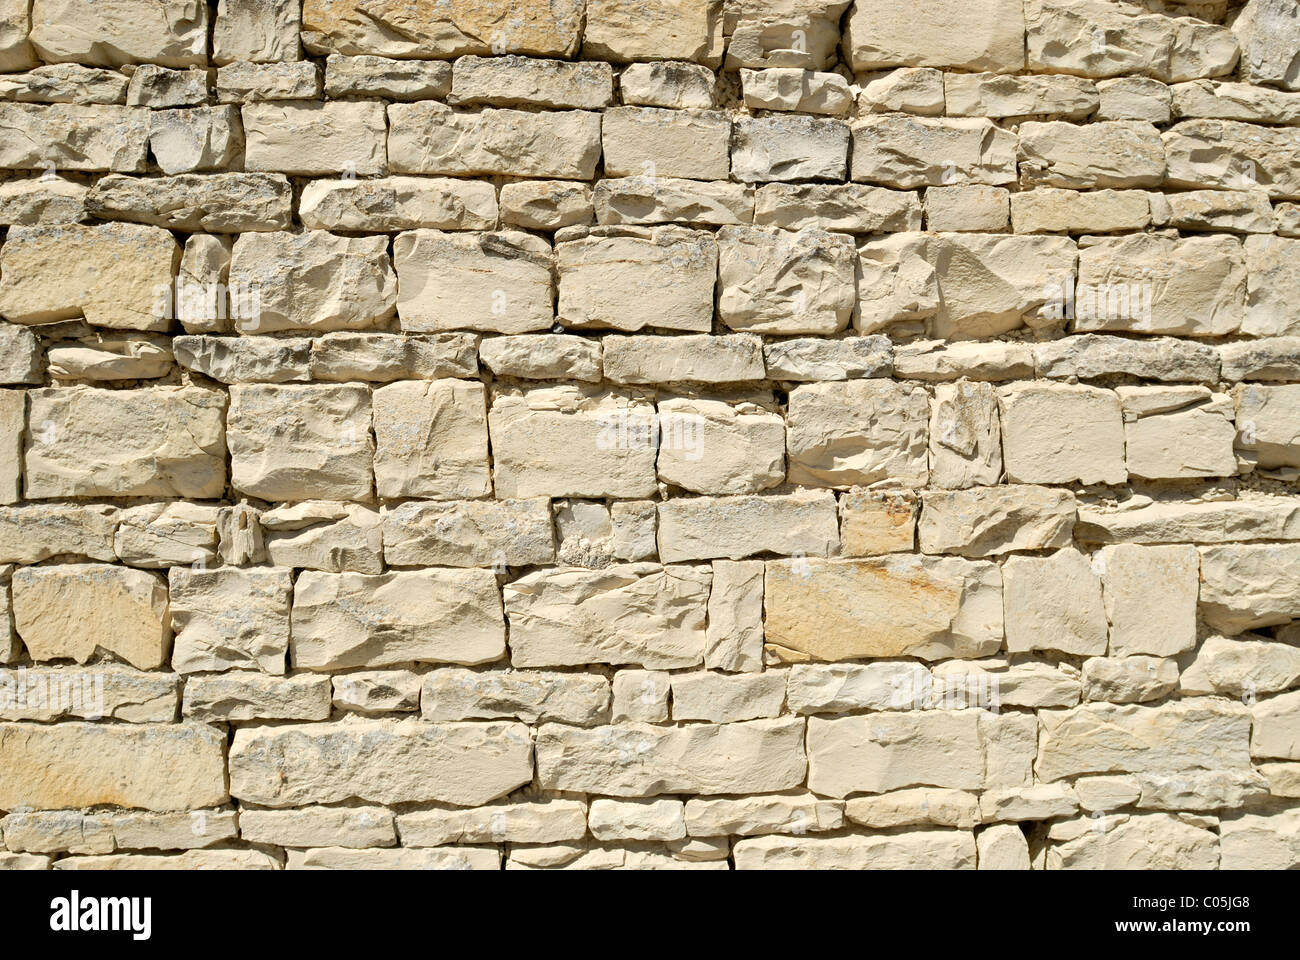 Section Of A Exterior Limestone Wall Used To Build Many The Older Homes In Smaller